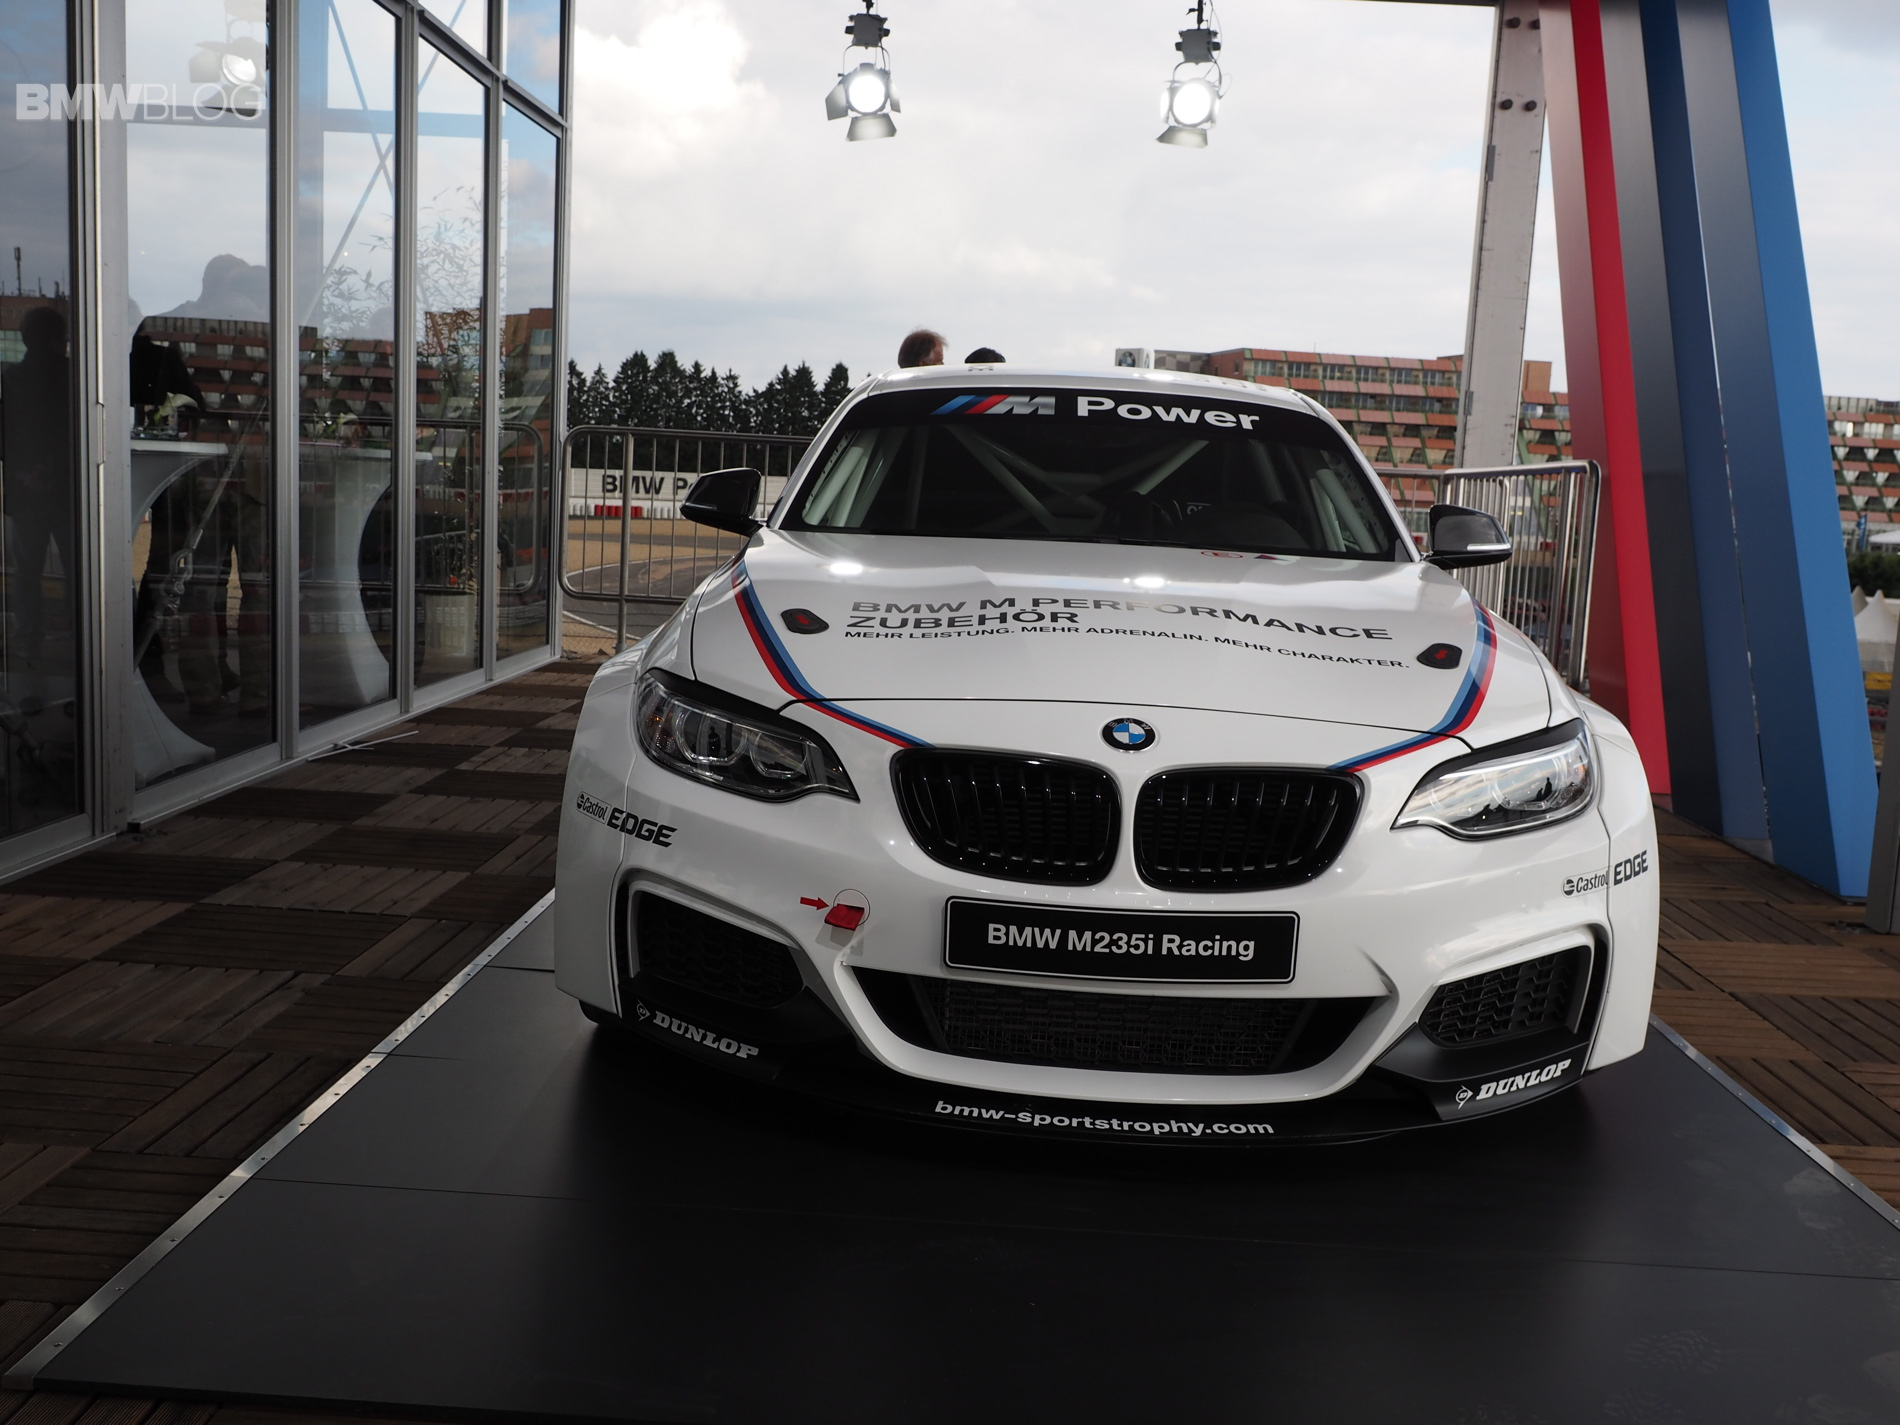 bmw m235i racing photo 0